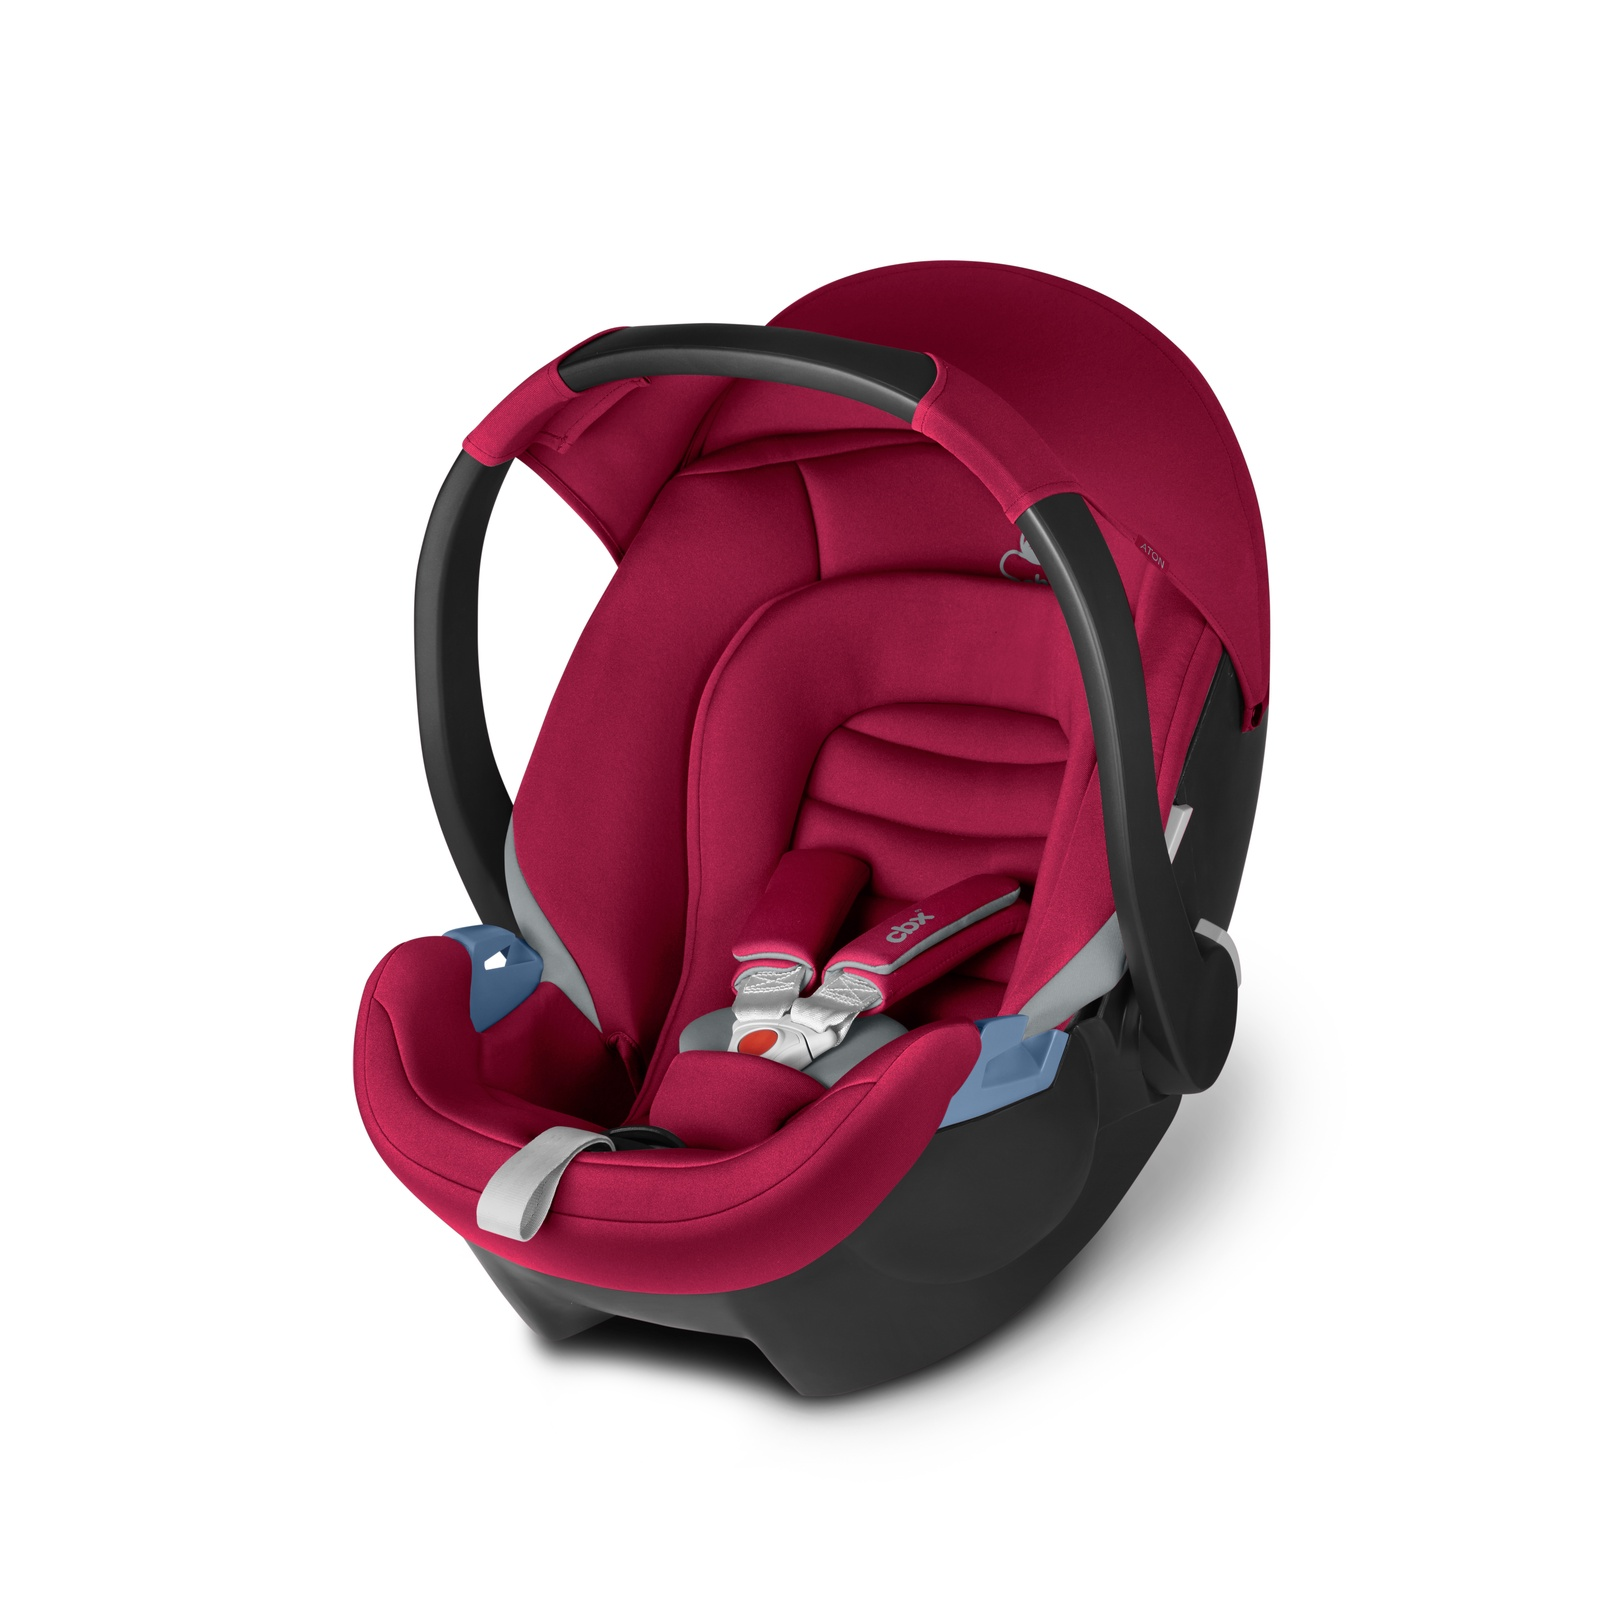 CBX Aton Basic (Crunchy Red) автокресло cbx by cybex aton basic cbx comfy grey 518001563